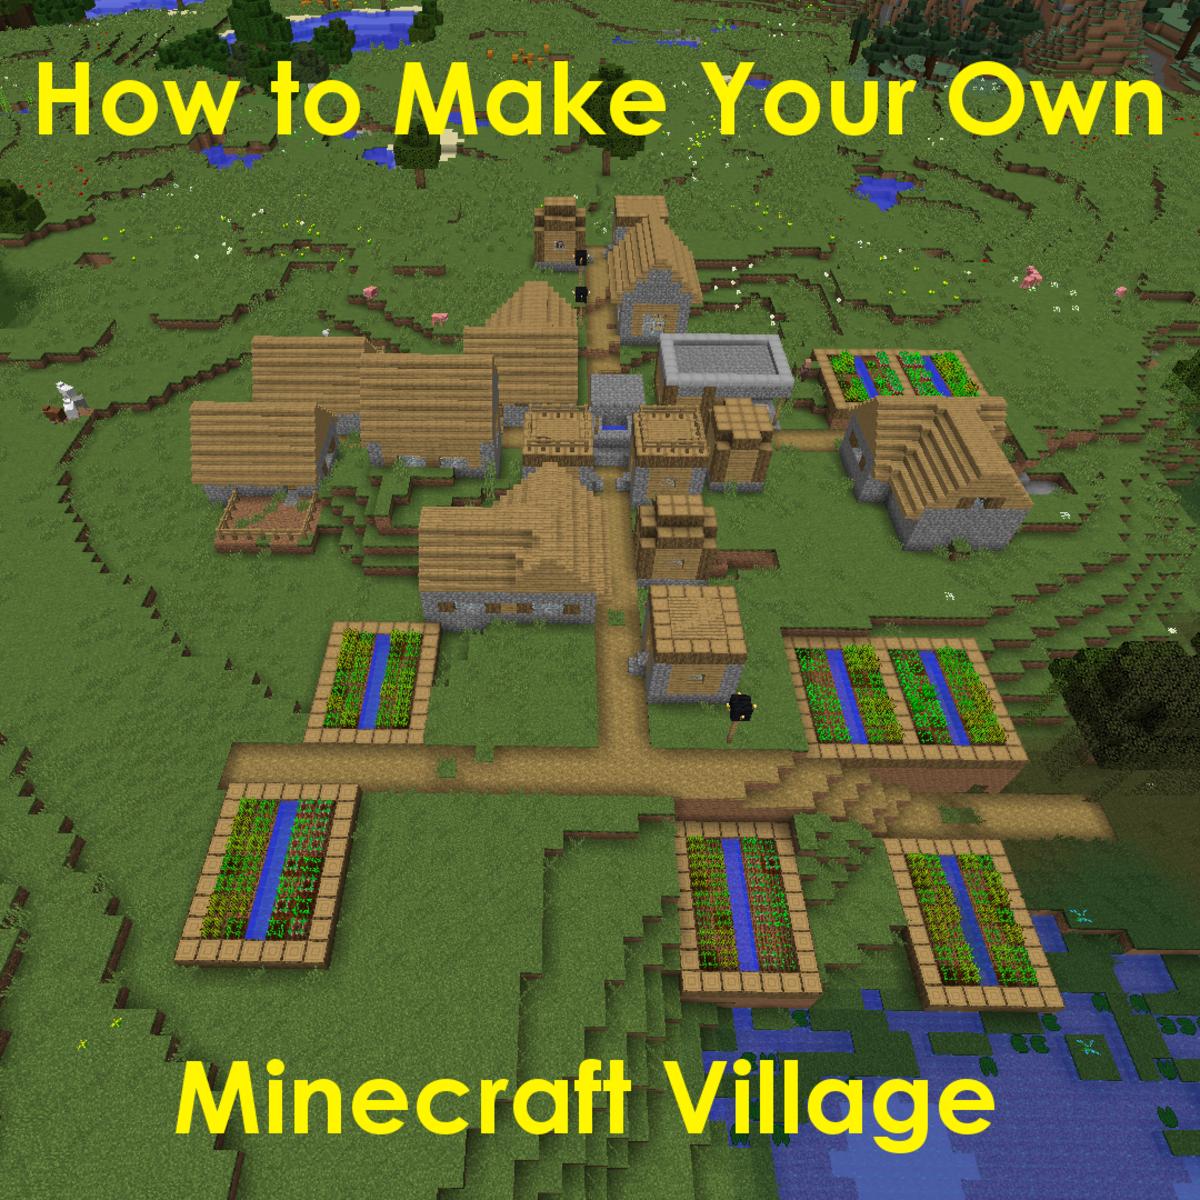 Learn how to make your own village by maximizing the amount of beds in your houses. Try curing zombie villagers, or transporting villagers from their village to yours!